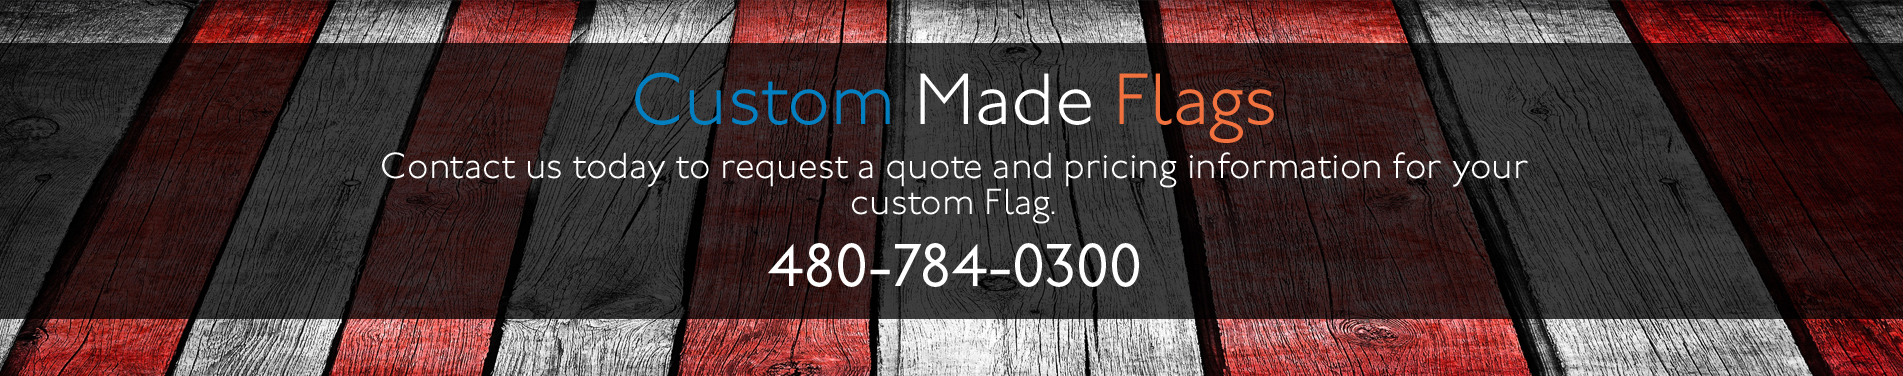 Custom Made Flags, No Hassle any Size with Fast Delivery